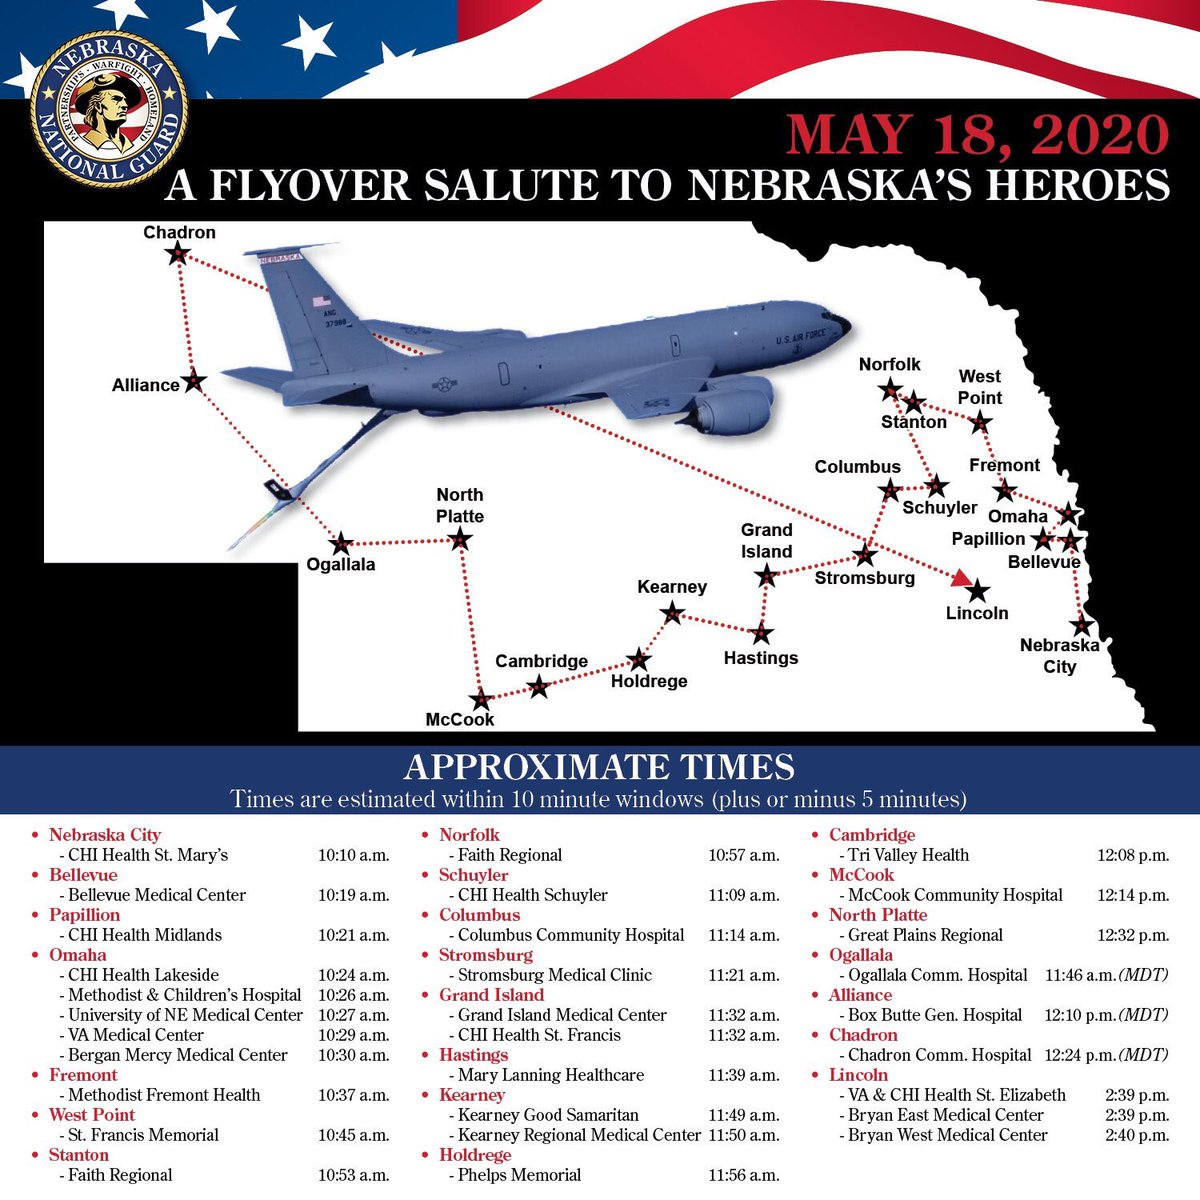 It's appears Chadron will be included in Monday's flyover from the Nebraska National Guard https://t.co/PbGOx0H33T